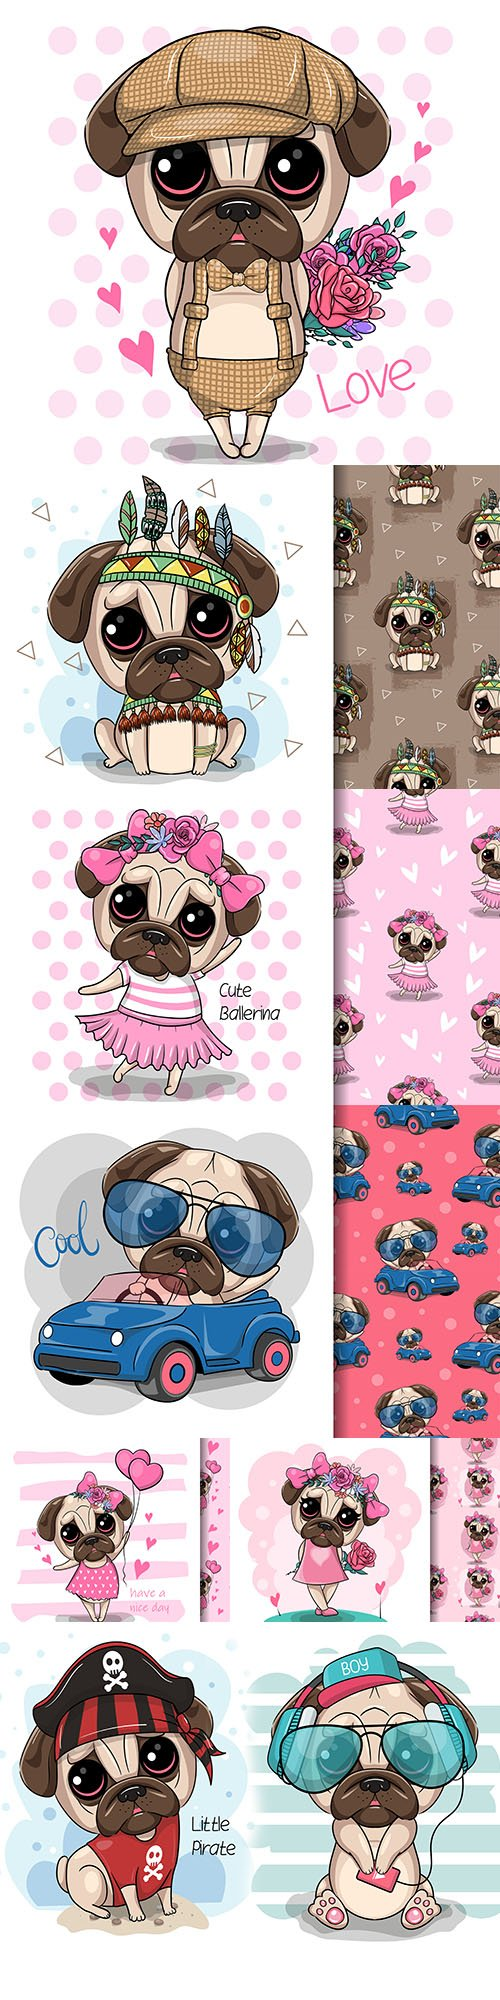 Cute cartoon mops dog in clothes and pattern